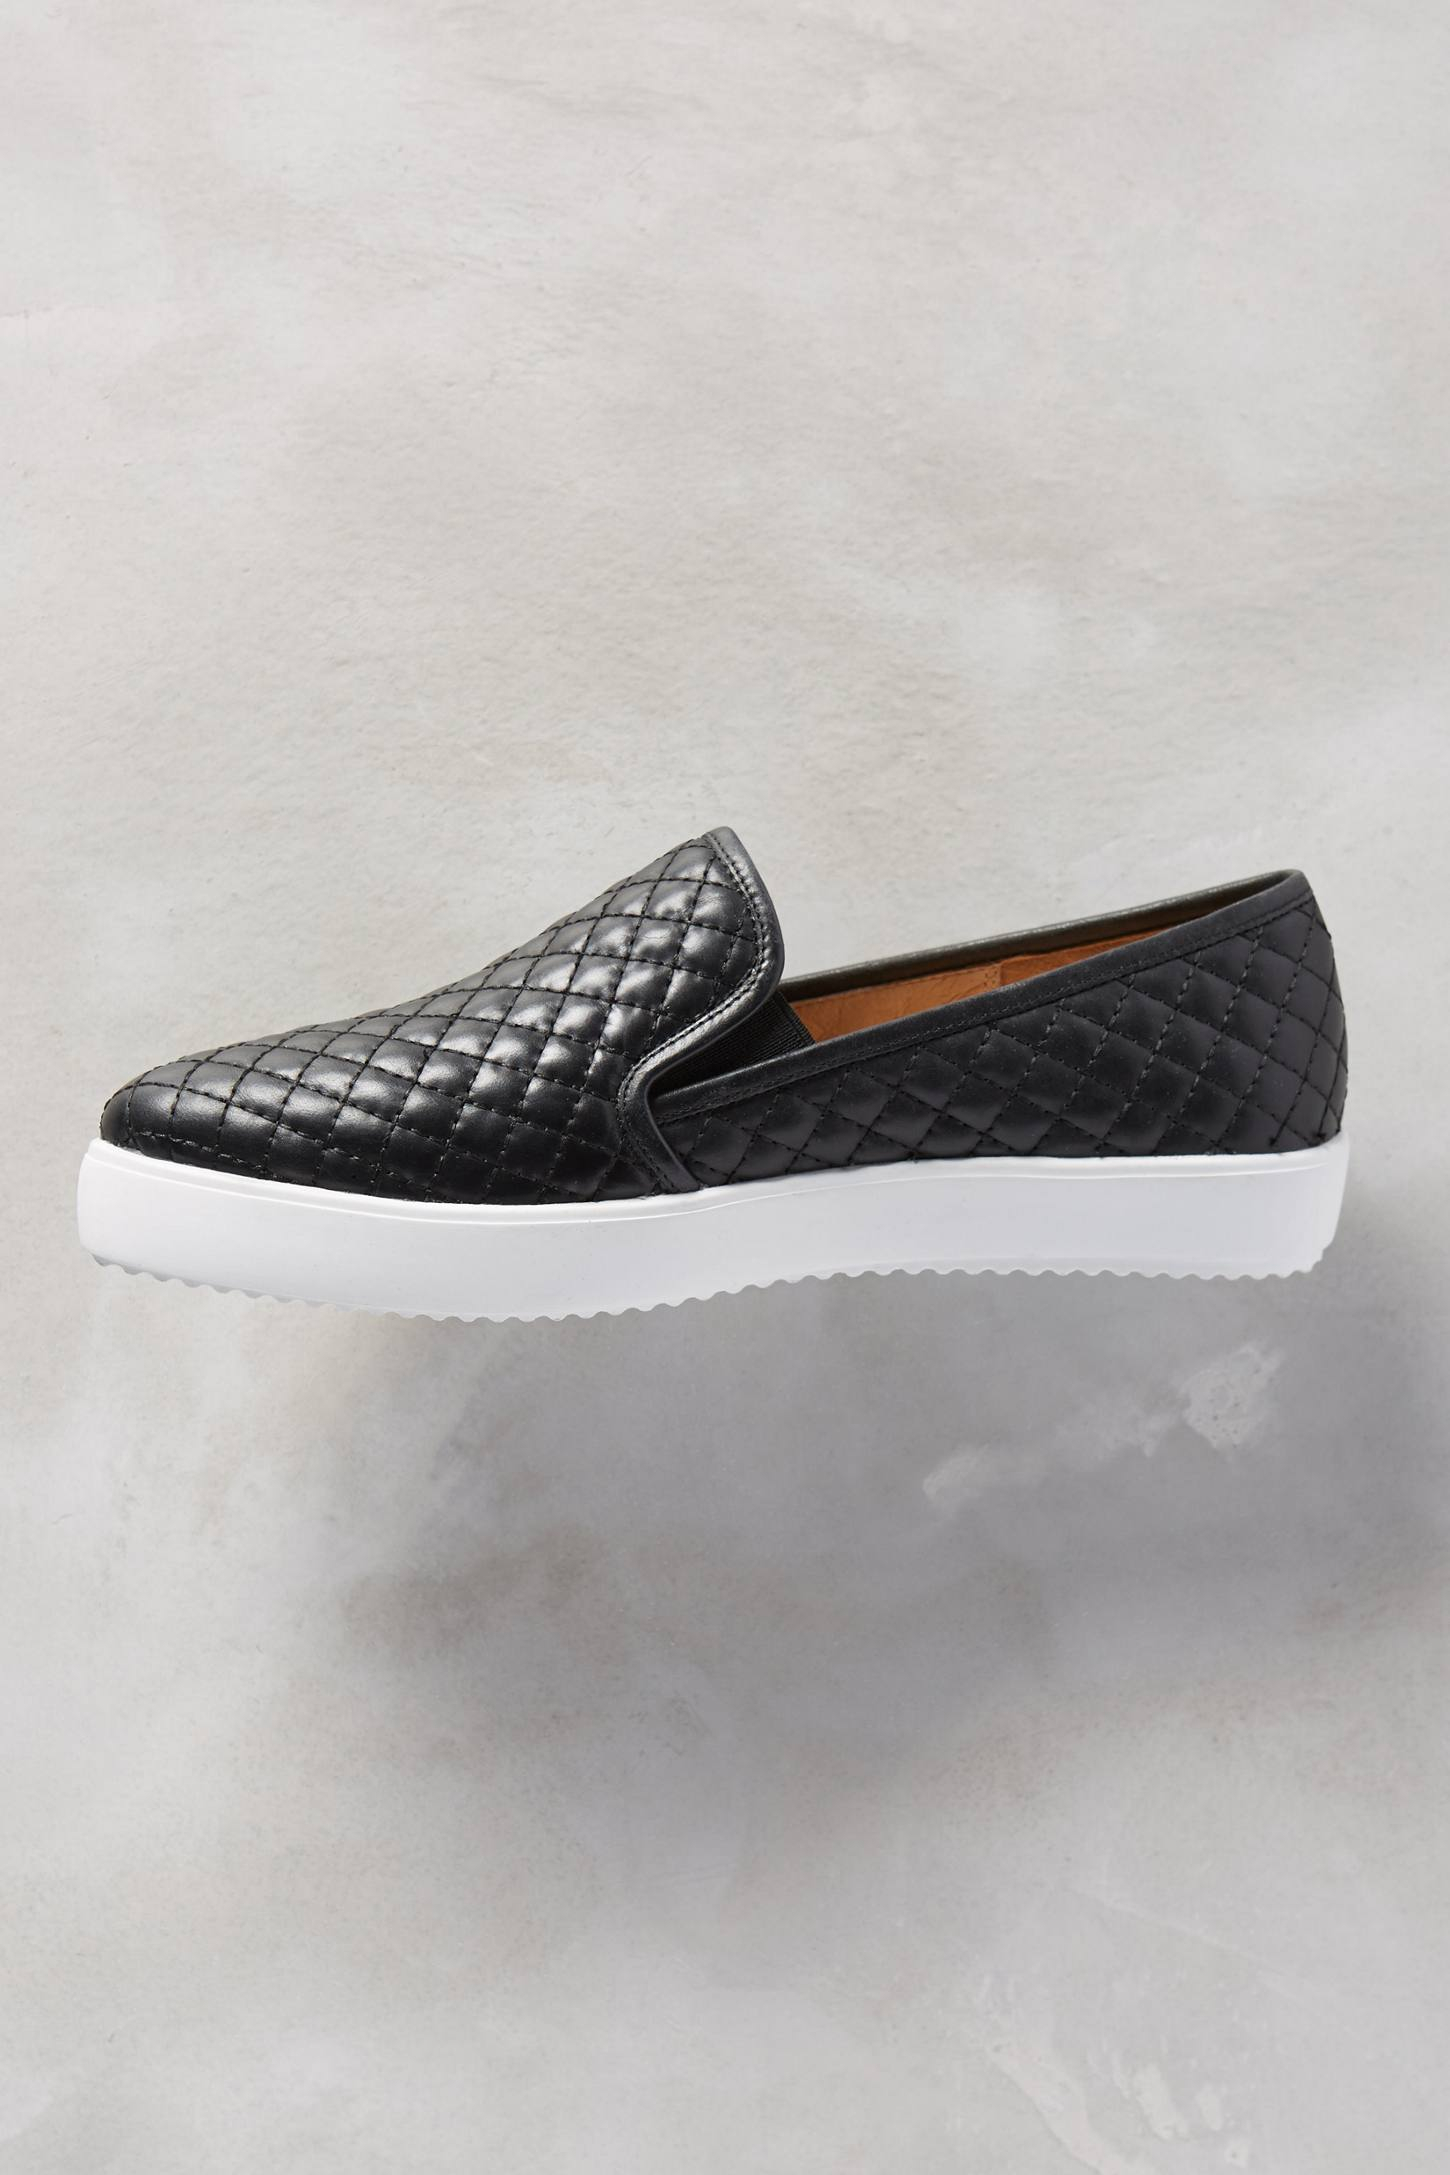 Anthropologie Quilted Slip On Sneakers In Black Lyst